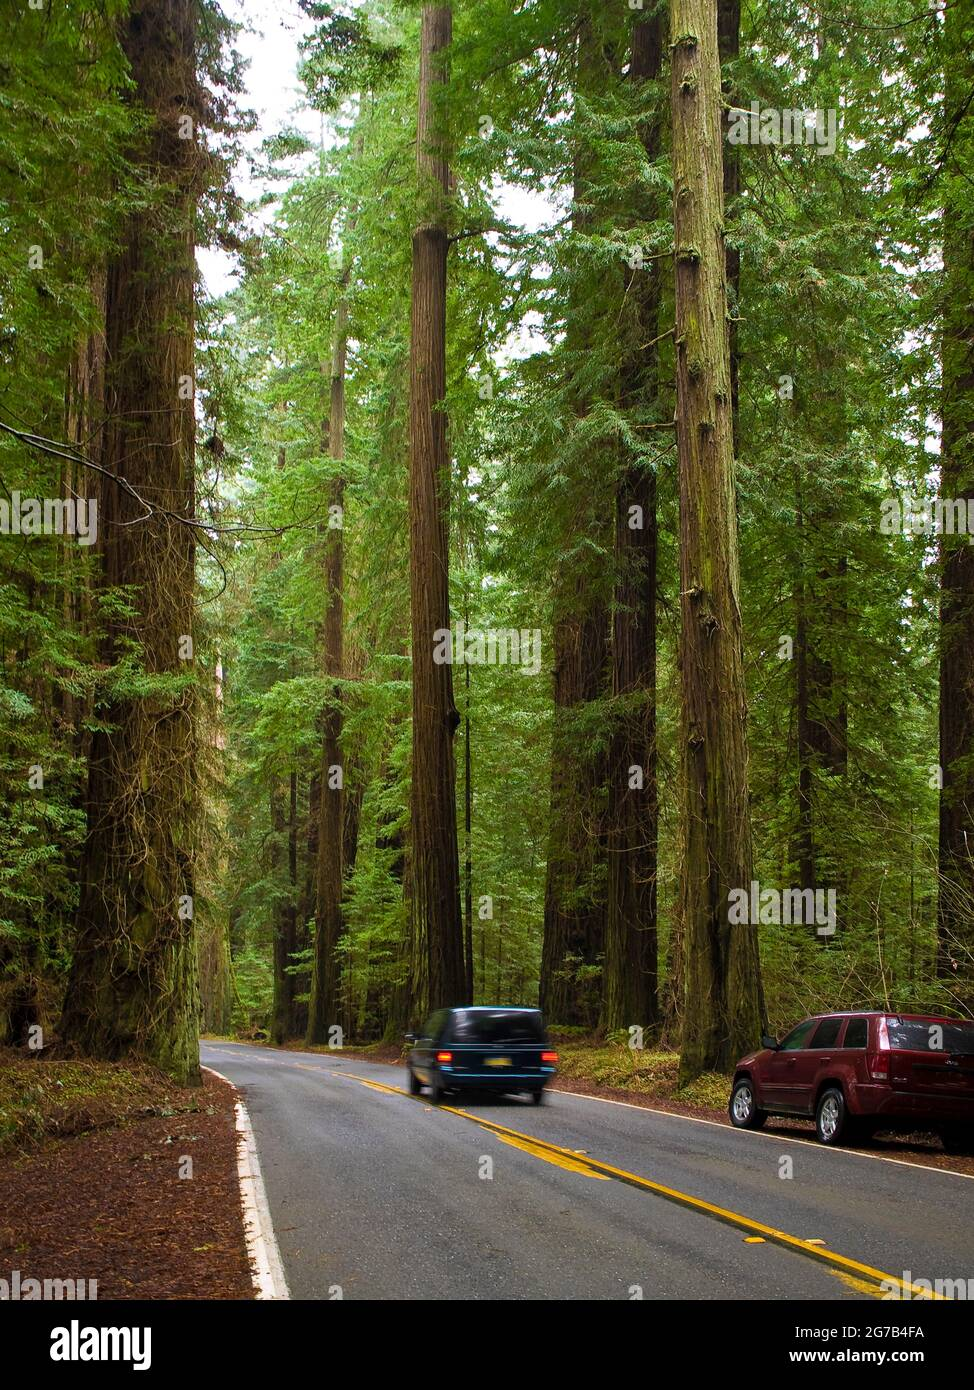 Avenue of the Giants, Humboldt Redwoods State Park, California, USA Stock Photo